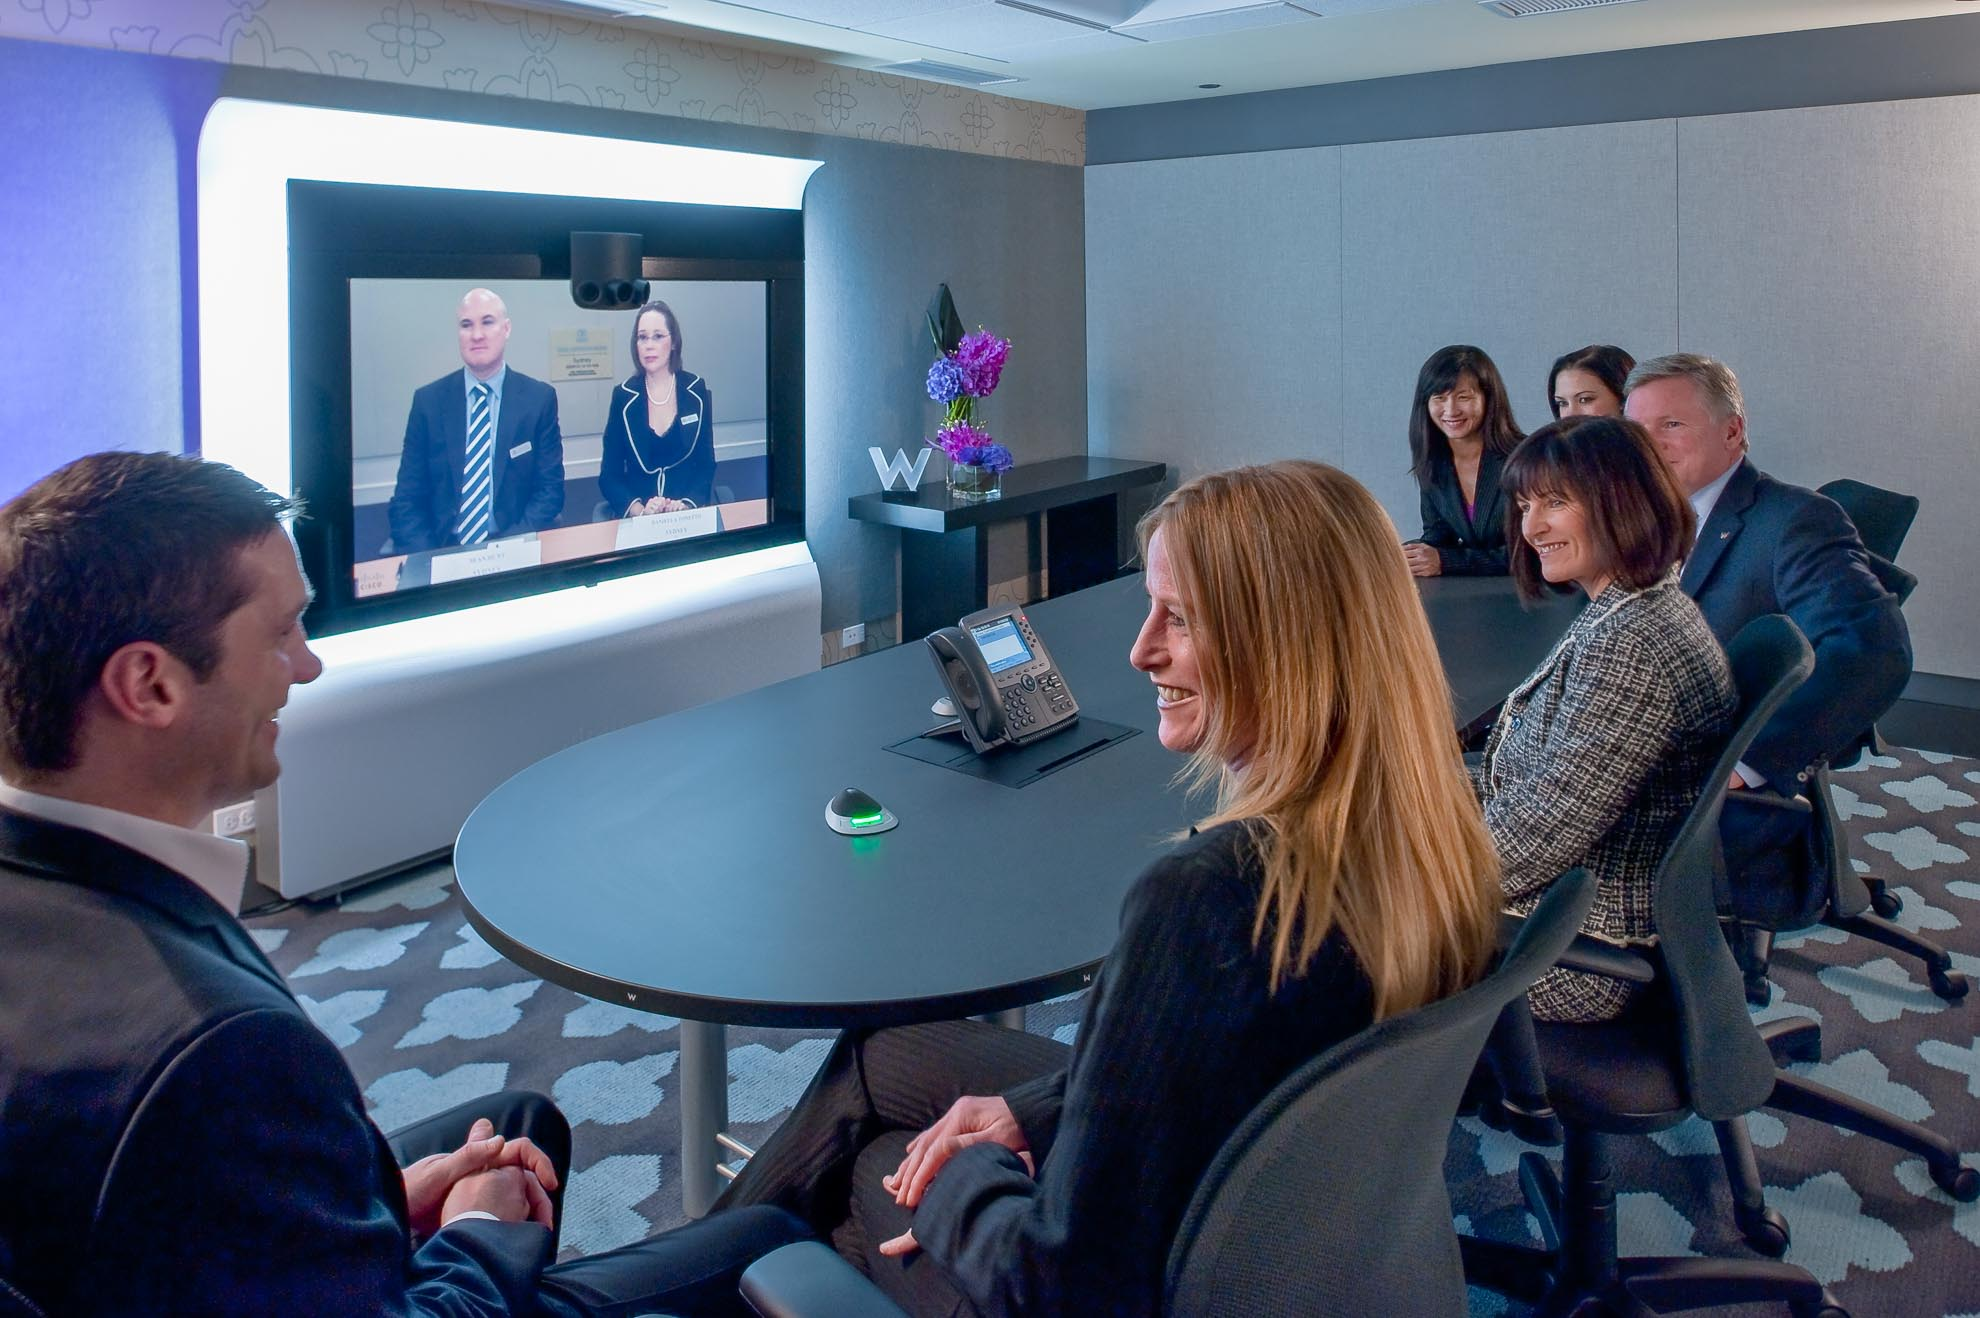 Participants of a corporate teleconference